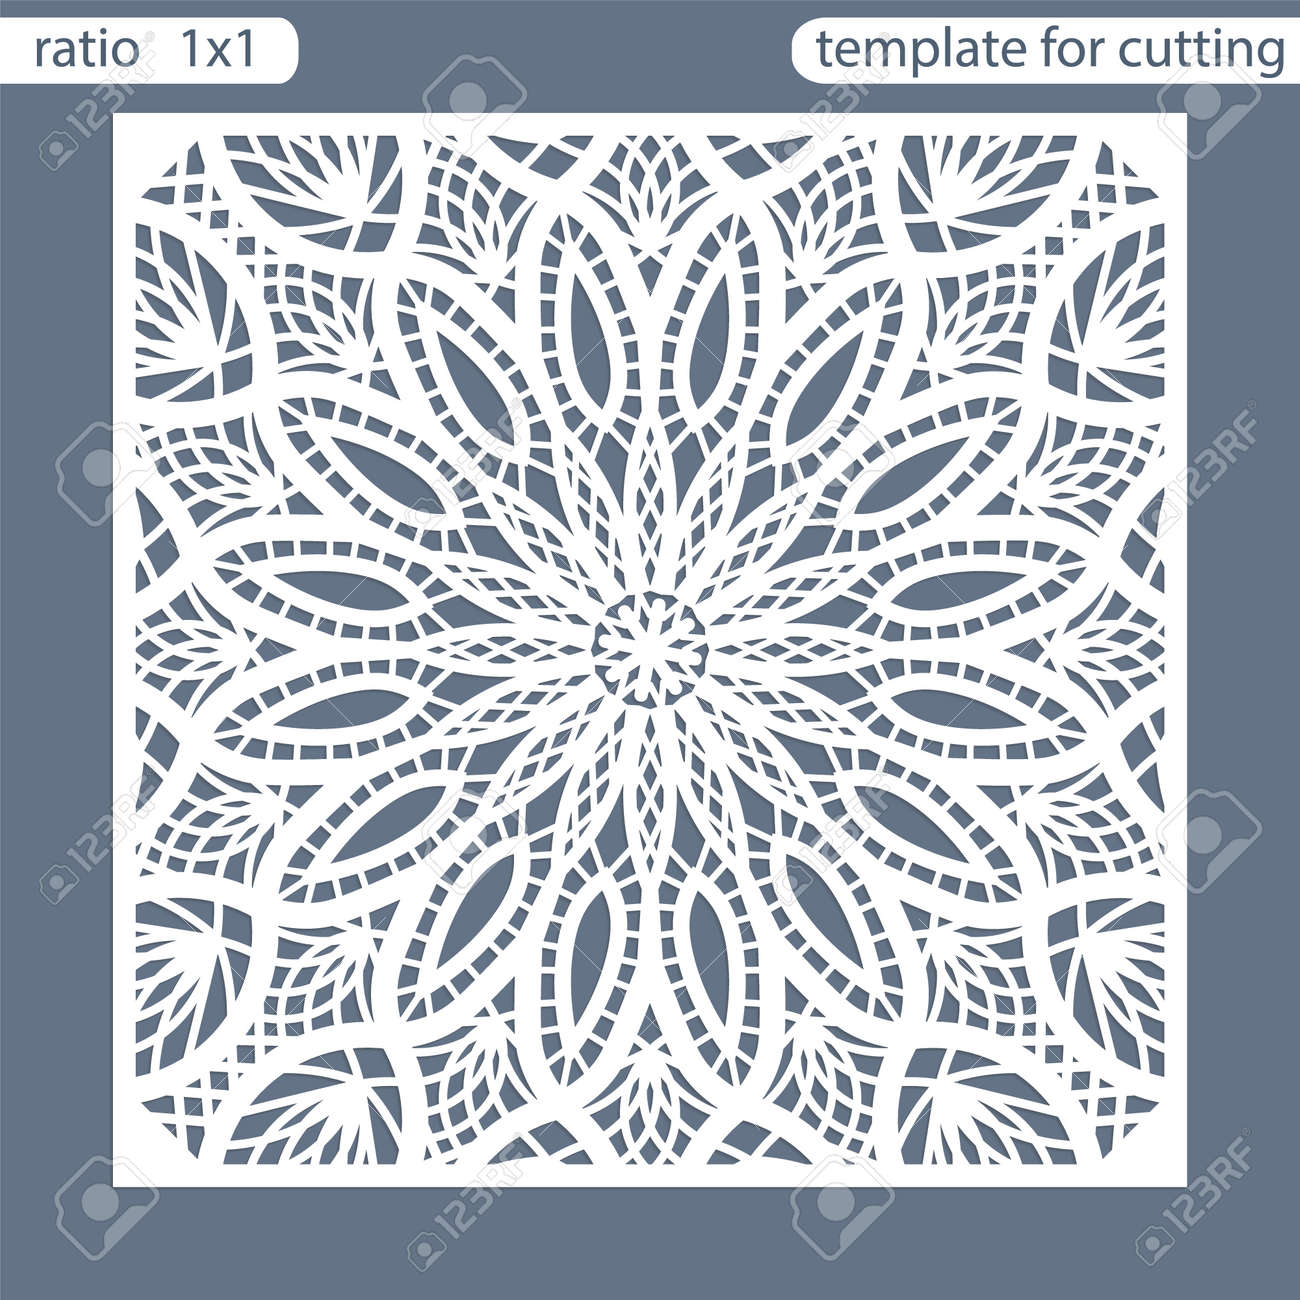 Template square greeting cards laser cut. Suitable for wedding invitations. Template greeting card for cutting plotter. Abstract round pattern. Vector illustrations. - 72583266